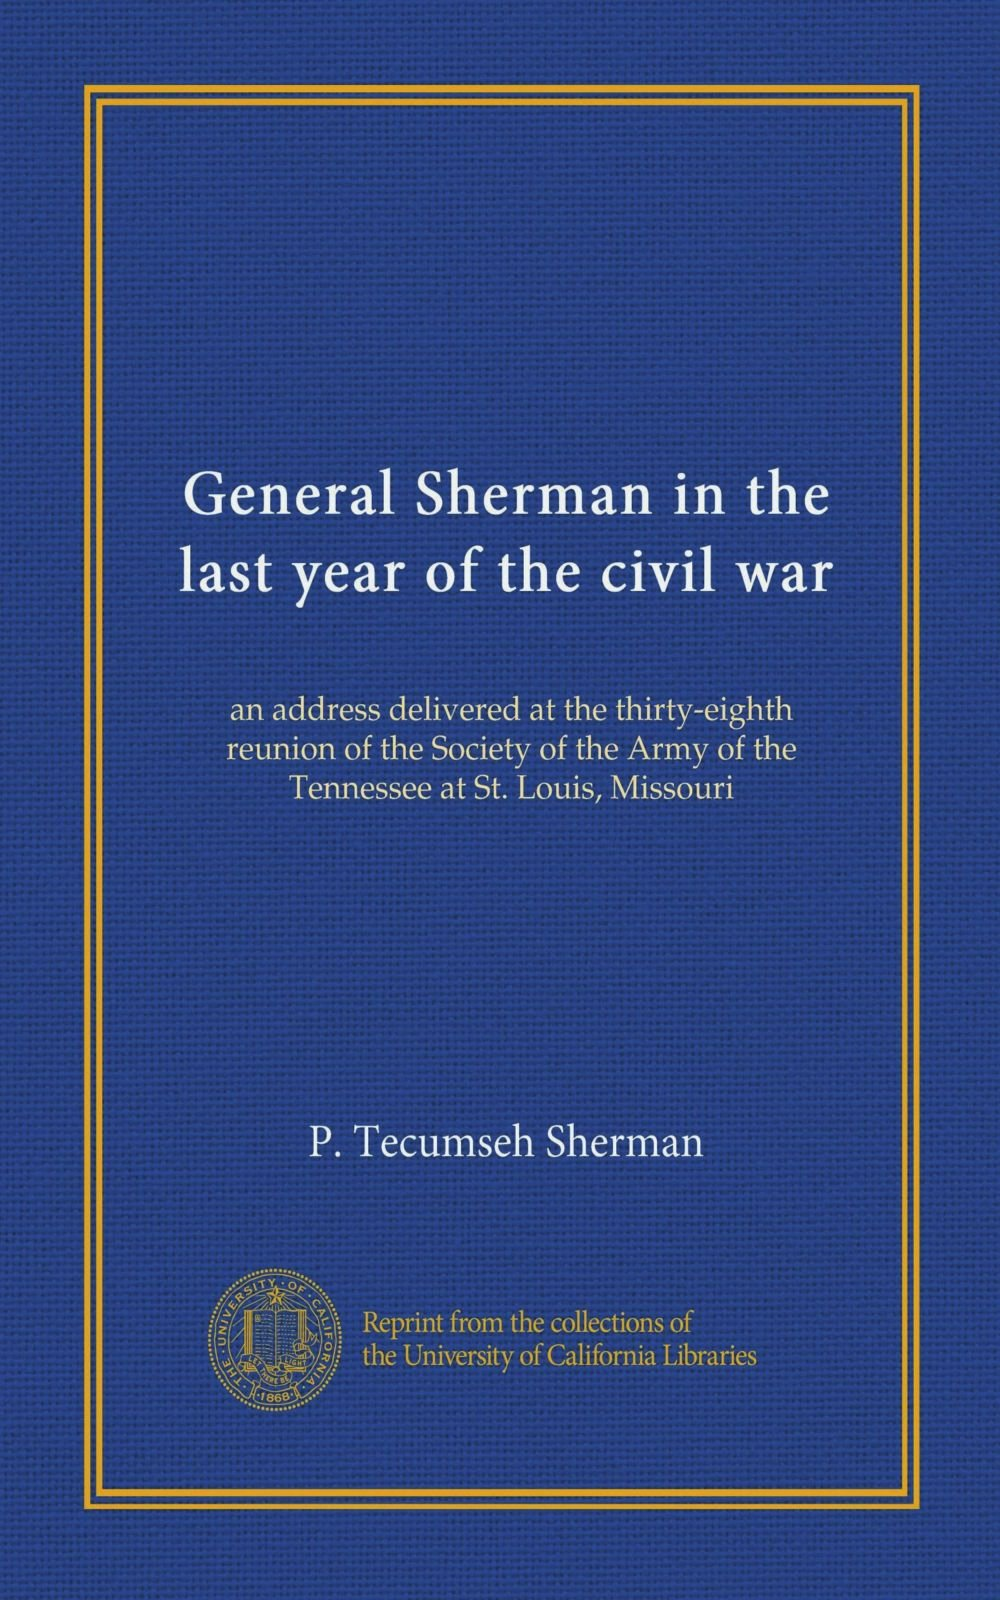 Download General Sherman in the last year of the civil war: an address delivered at the thirty-eighth reunion of the Society of the Army of the Tennessee at St. Louis, Missouri pdf